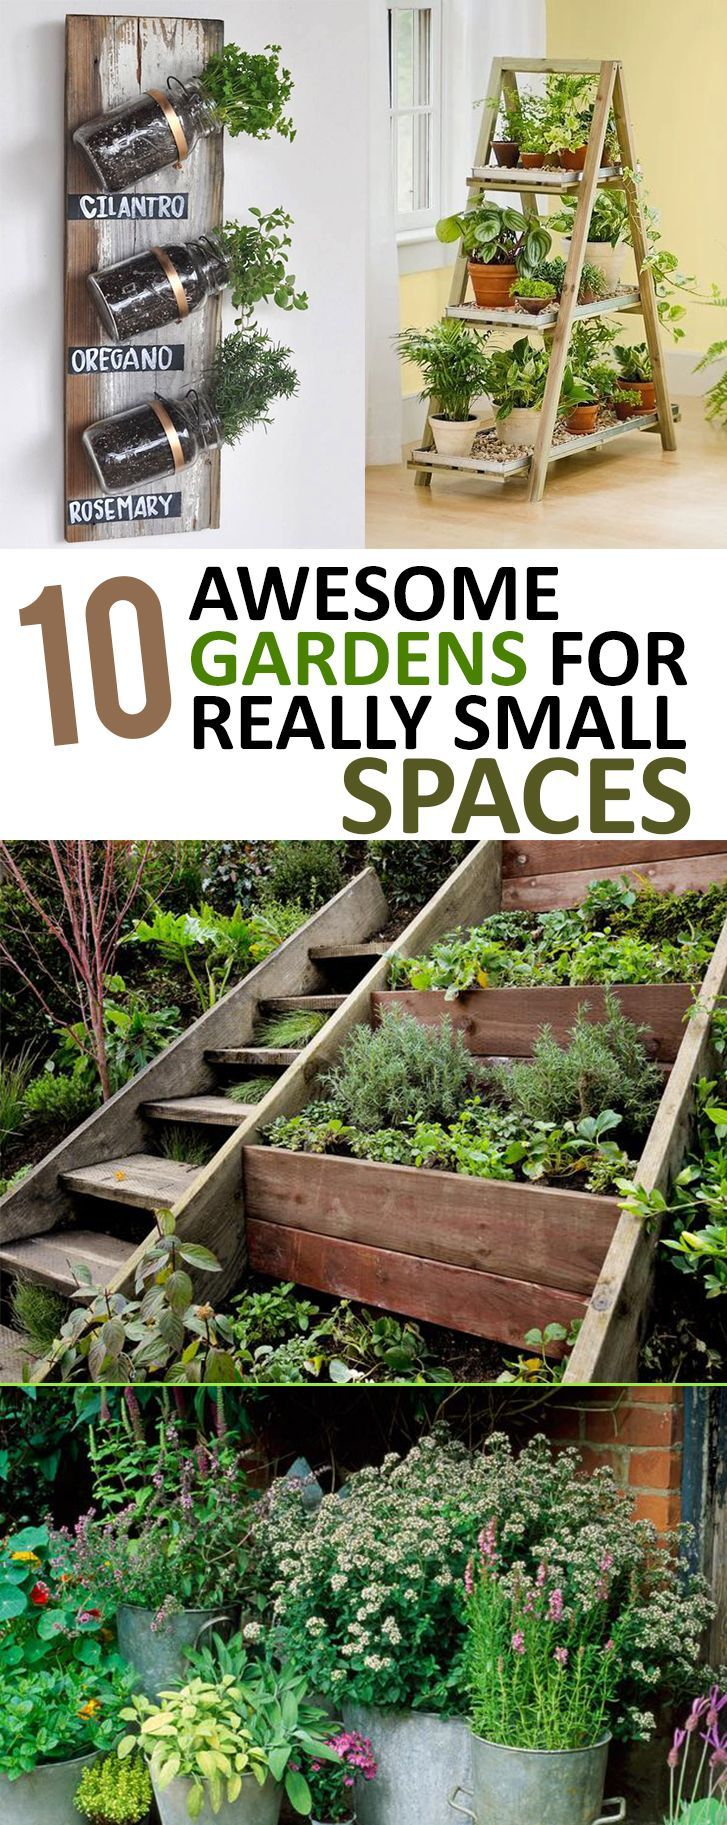 Small Space Garden Ideas inspiring ideas for gardens in small spaces Best 25 Small Gardens Ideas On Pinterest